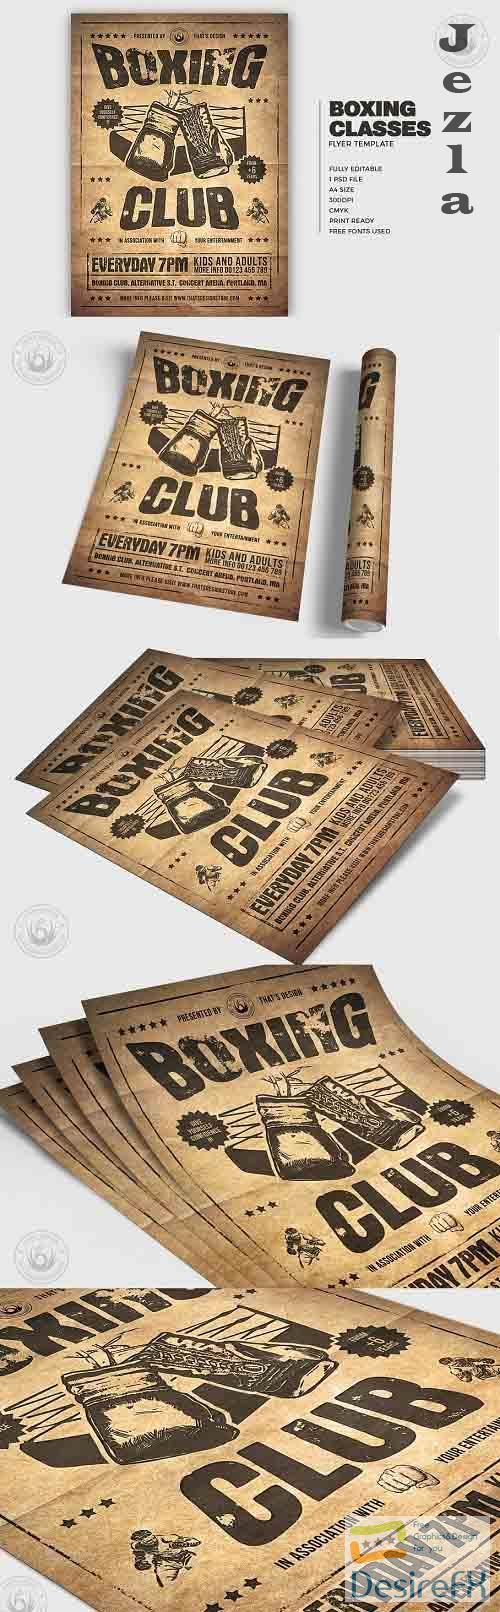 Boxing Classes Flyer Template V2 - 5052481